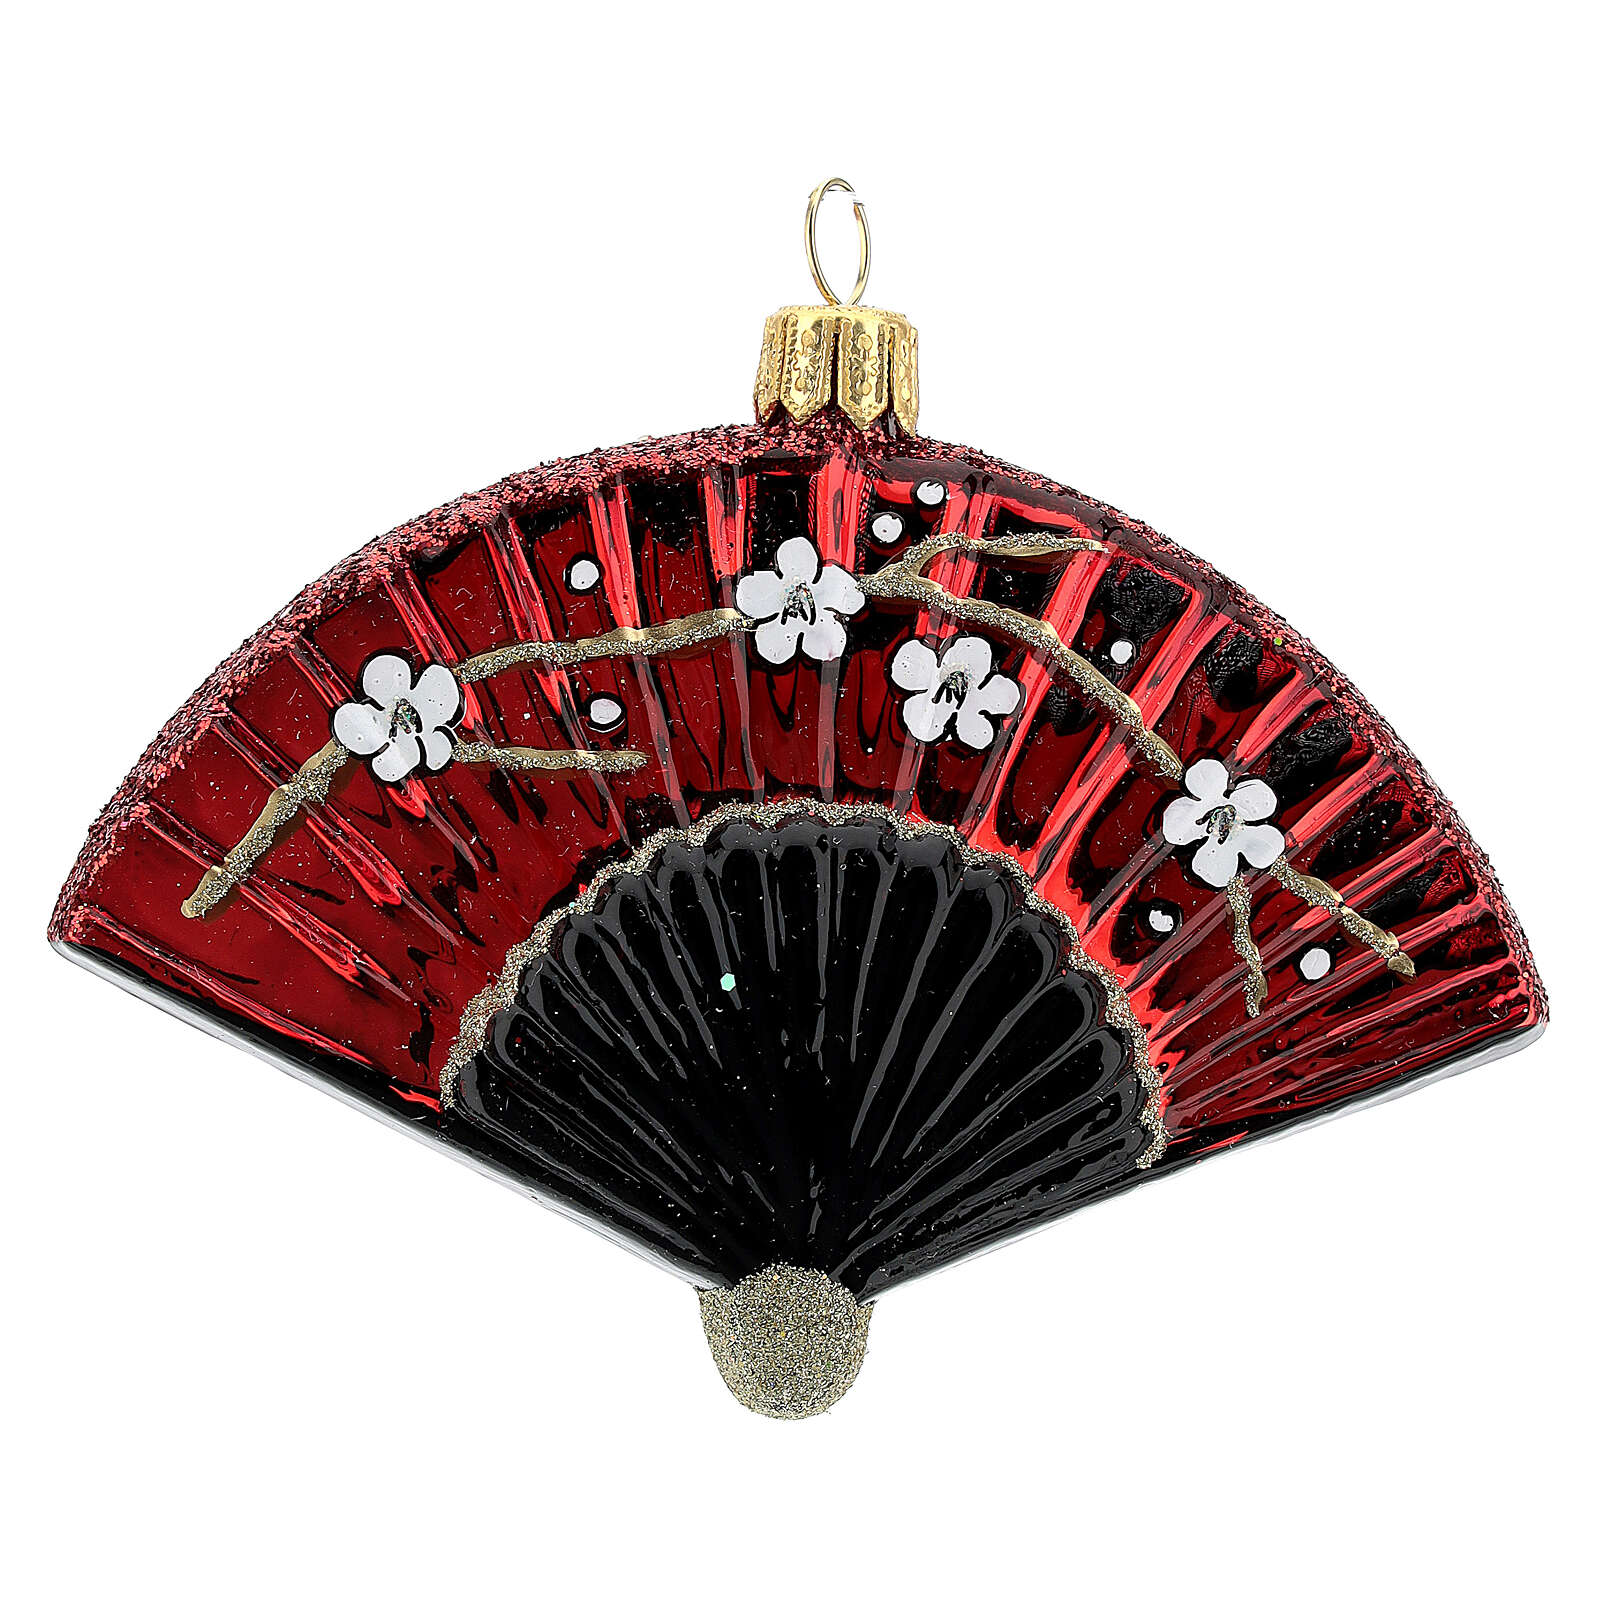 Japanese fan blown glass Christmas tree decoration 4